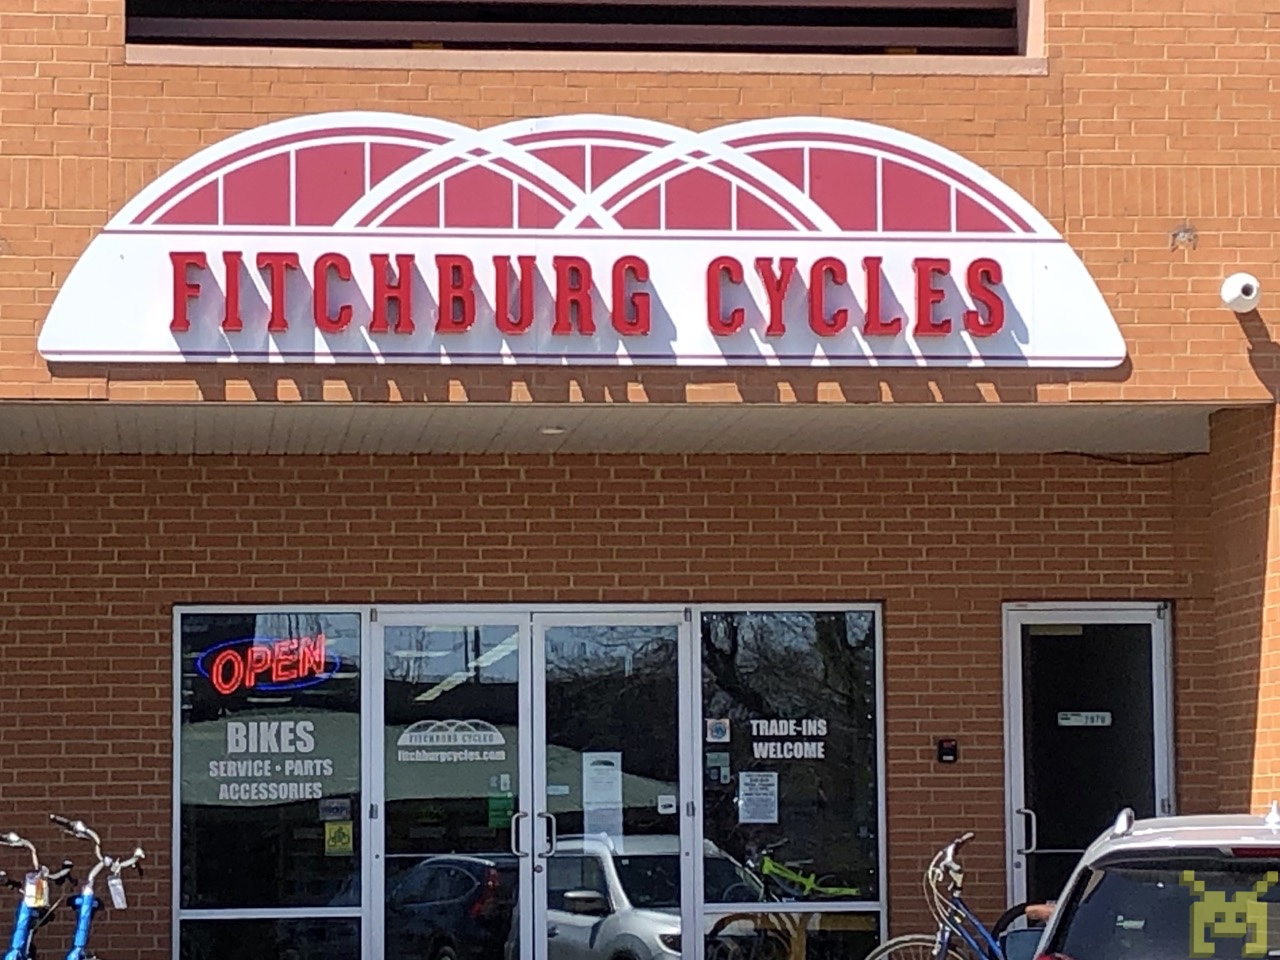 Fitchburg Cycles